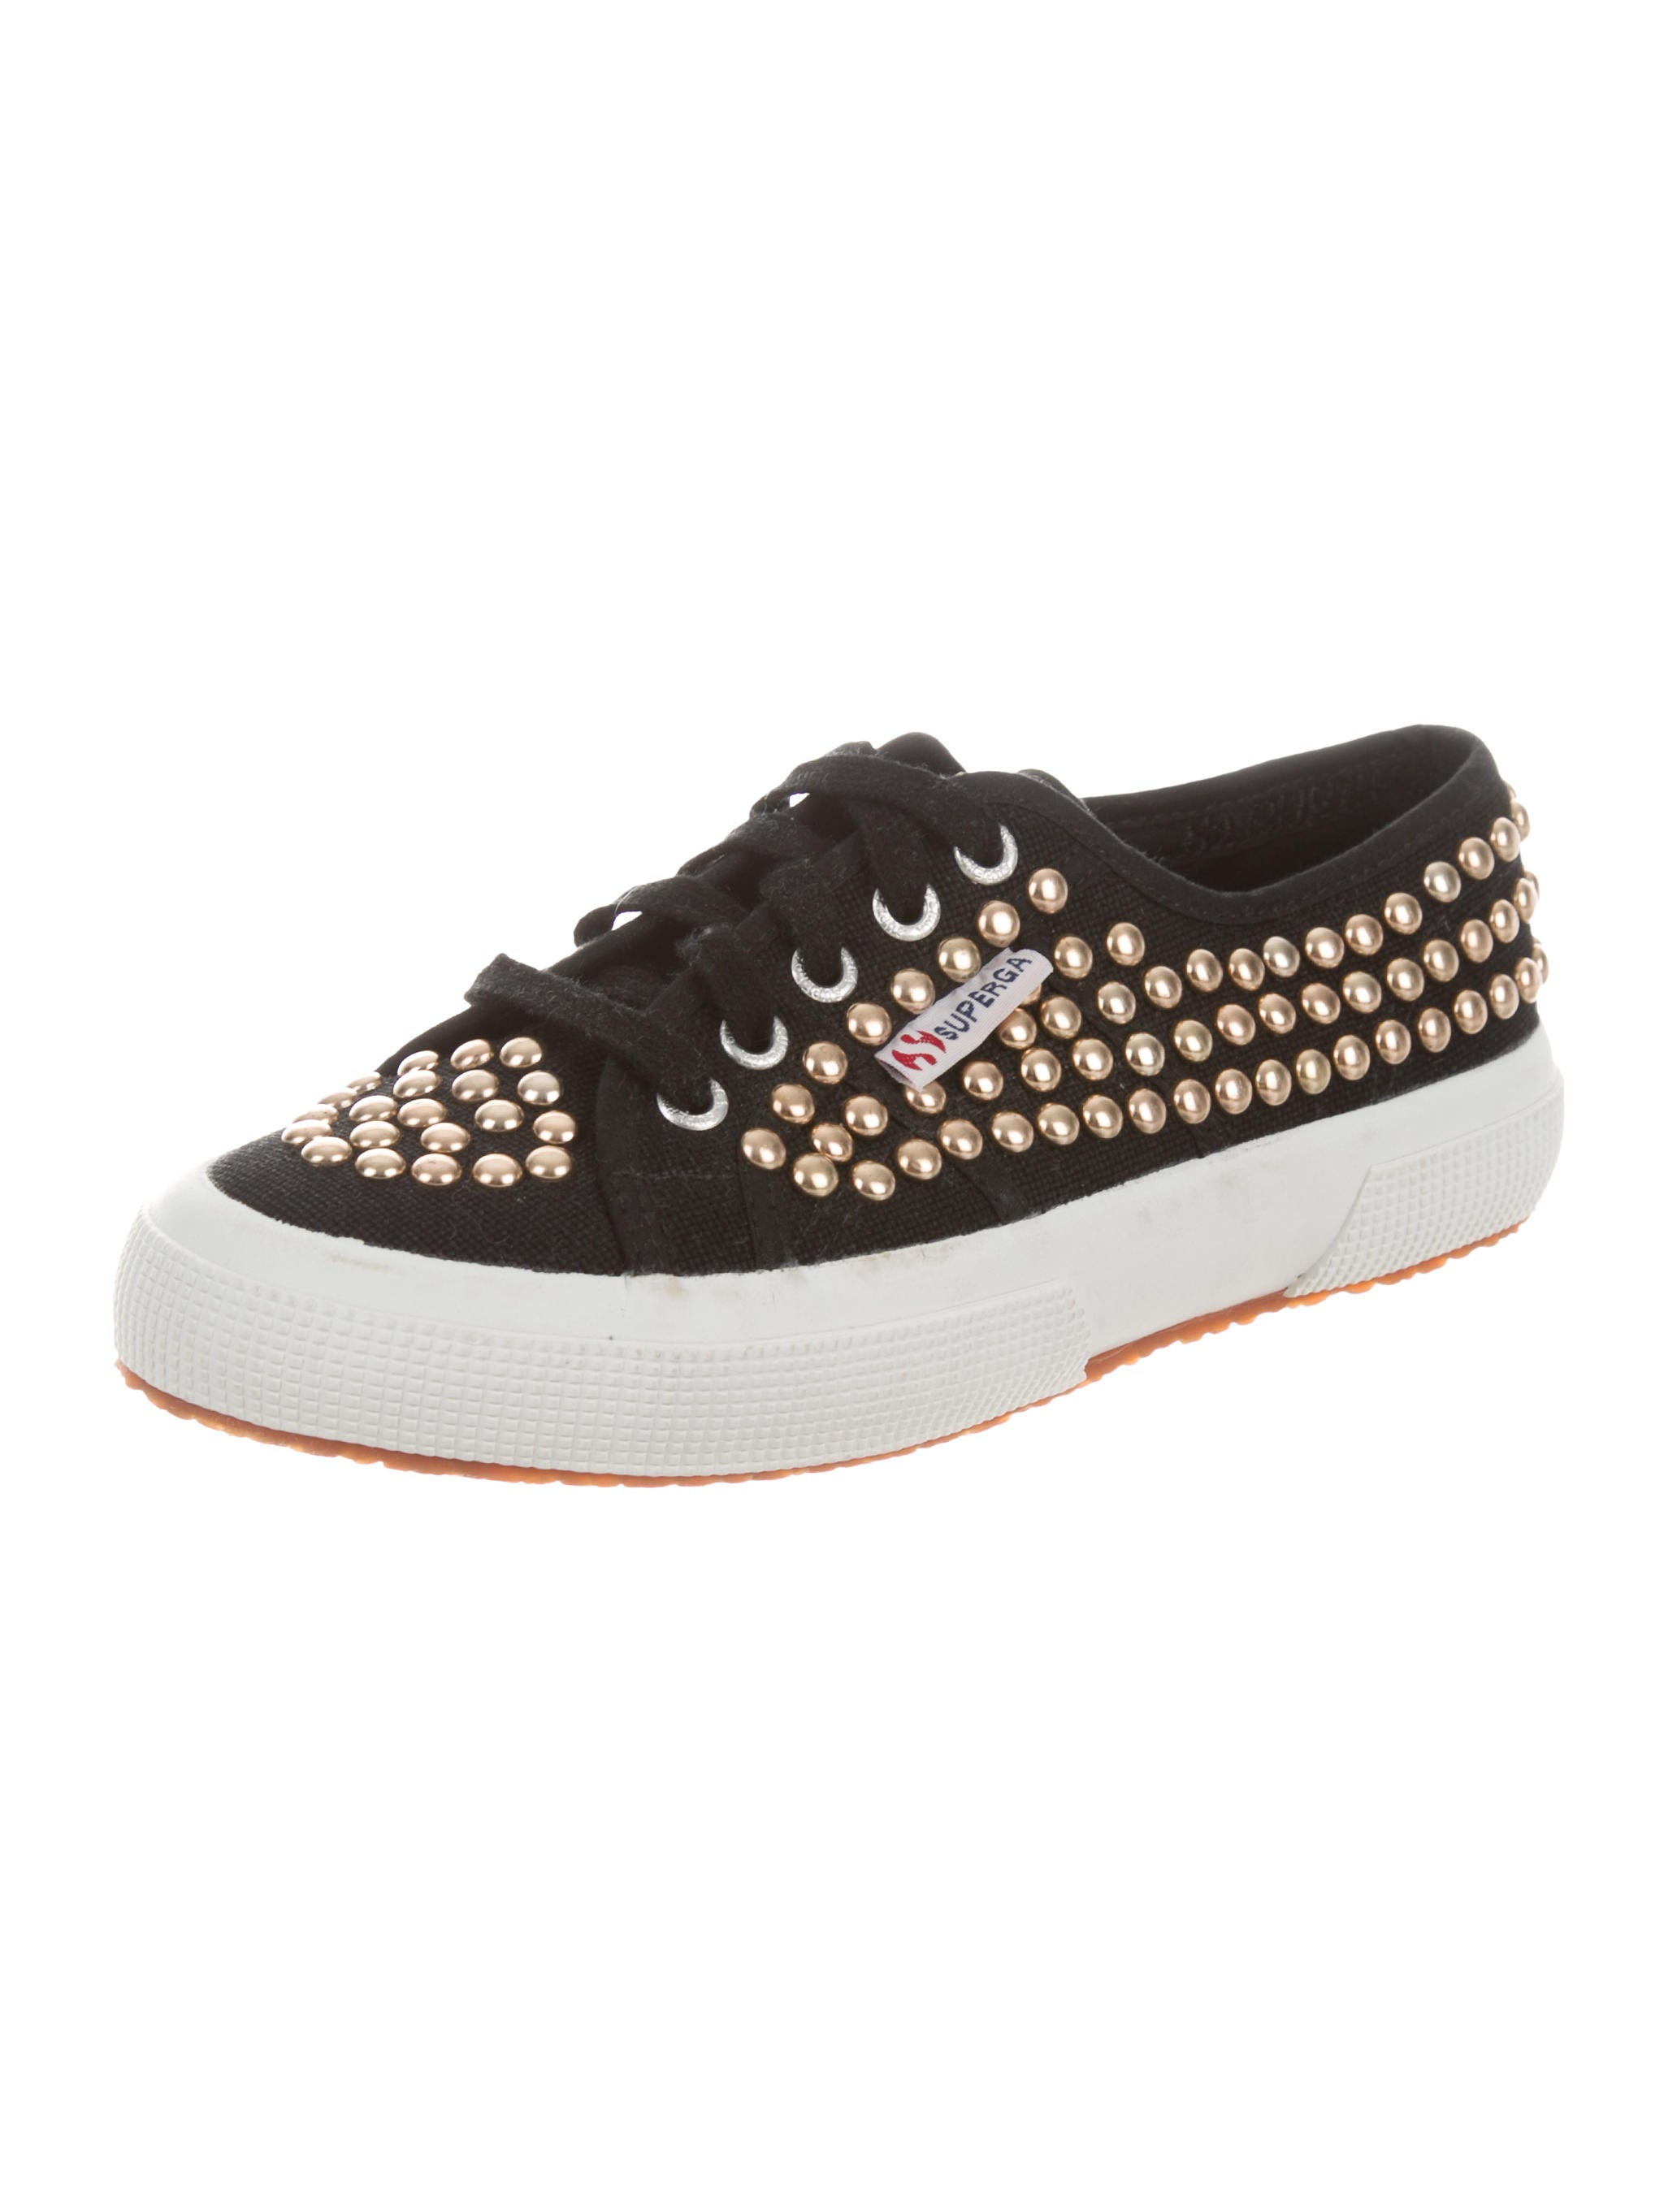 Studded Vrxasq Realreal Superga Sneakers Wspga20207 The Canvas Shoes ULjqzMVSpG